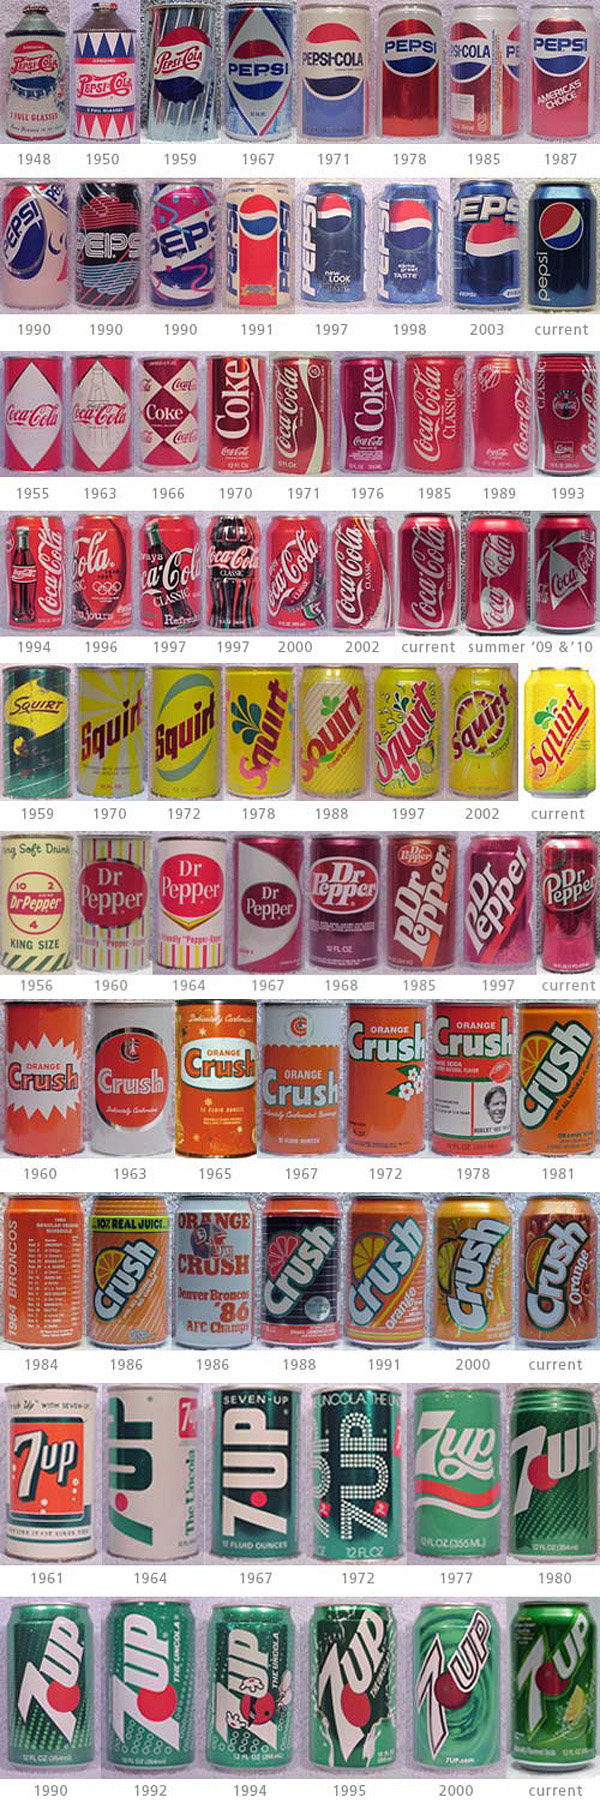 soft-drink-can-evolution.jpg